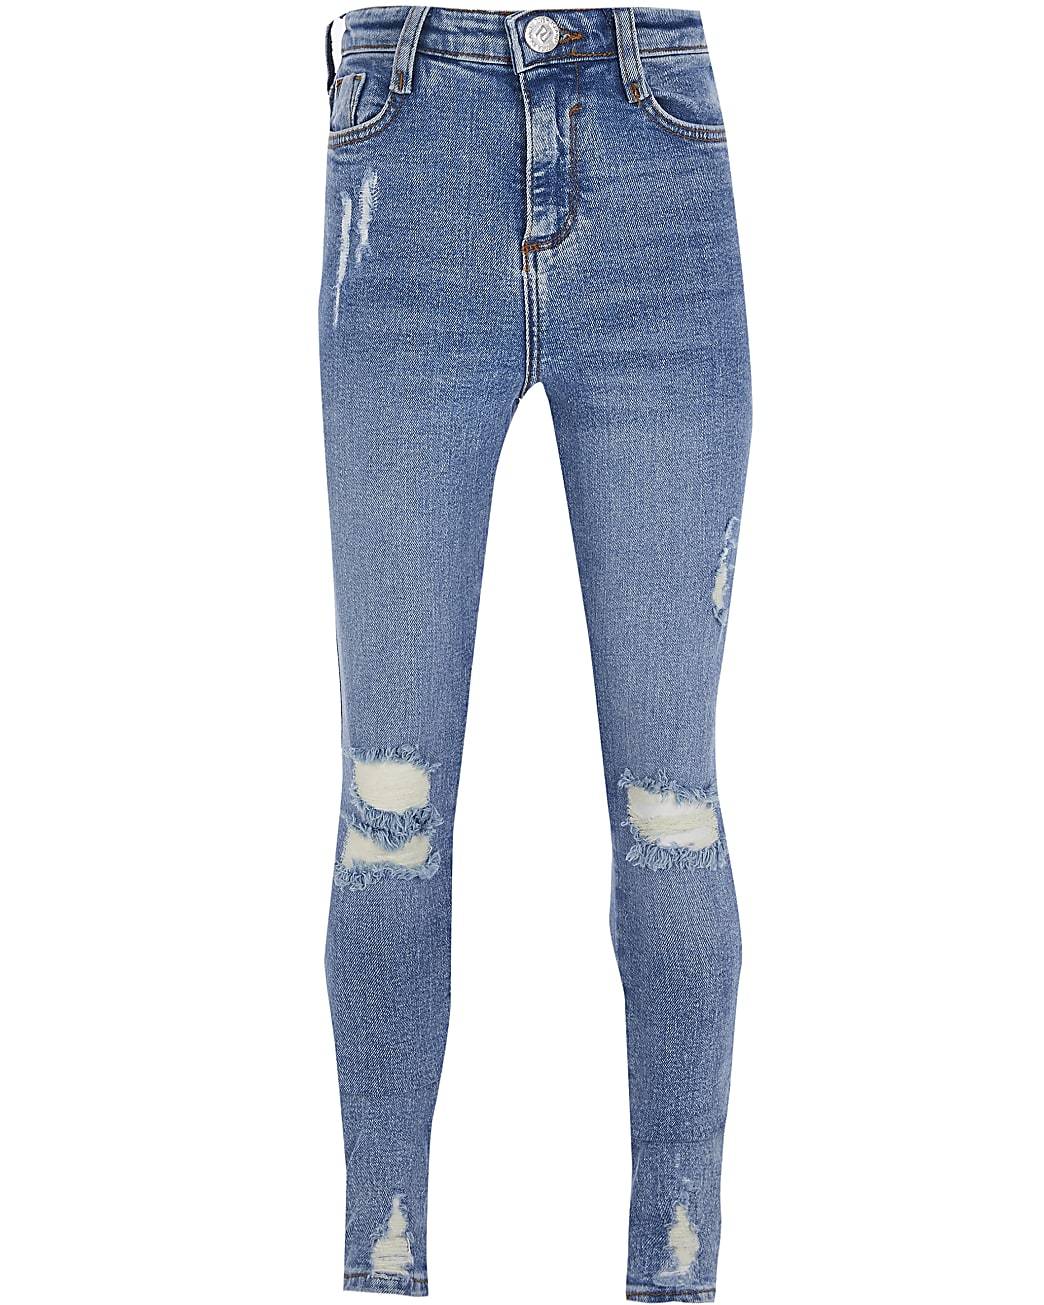 Girls blue ripped high rise skinny jeans